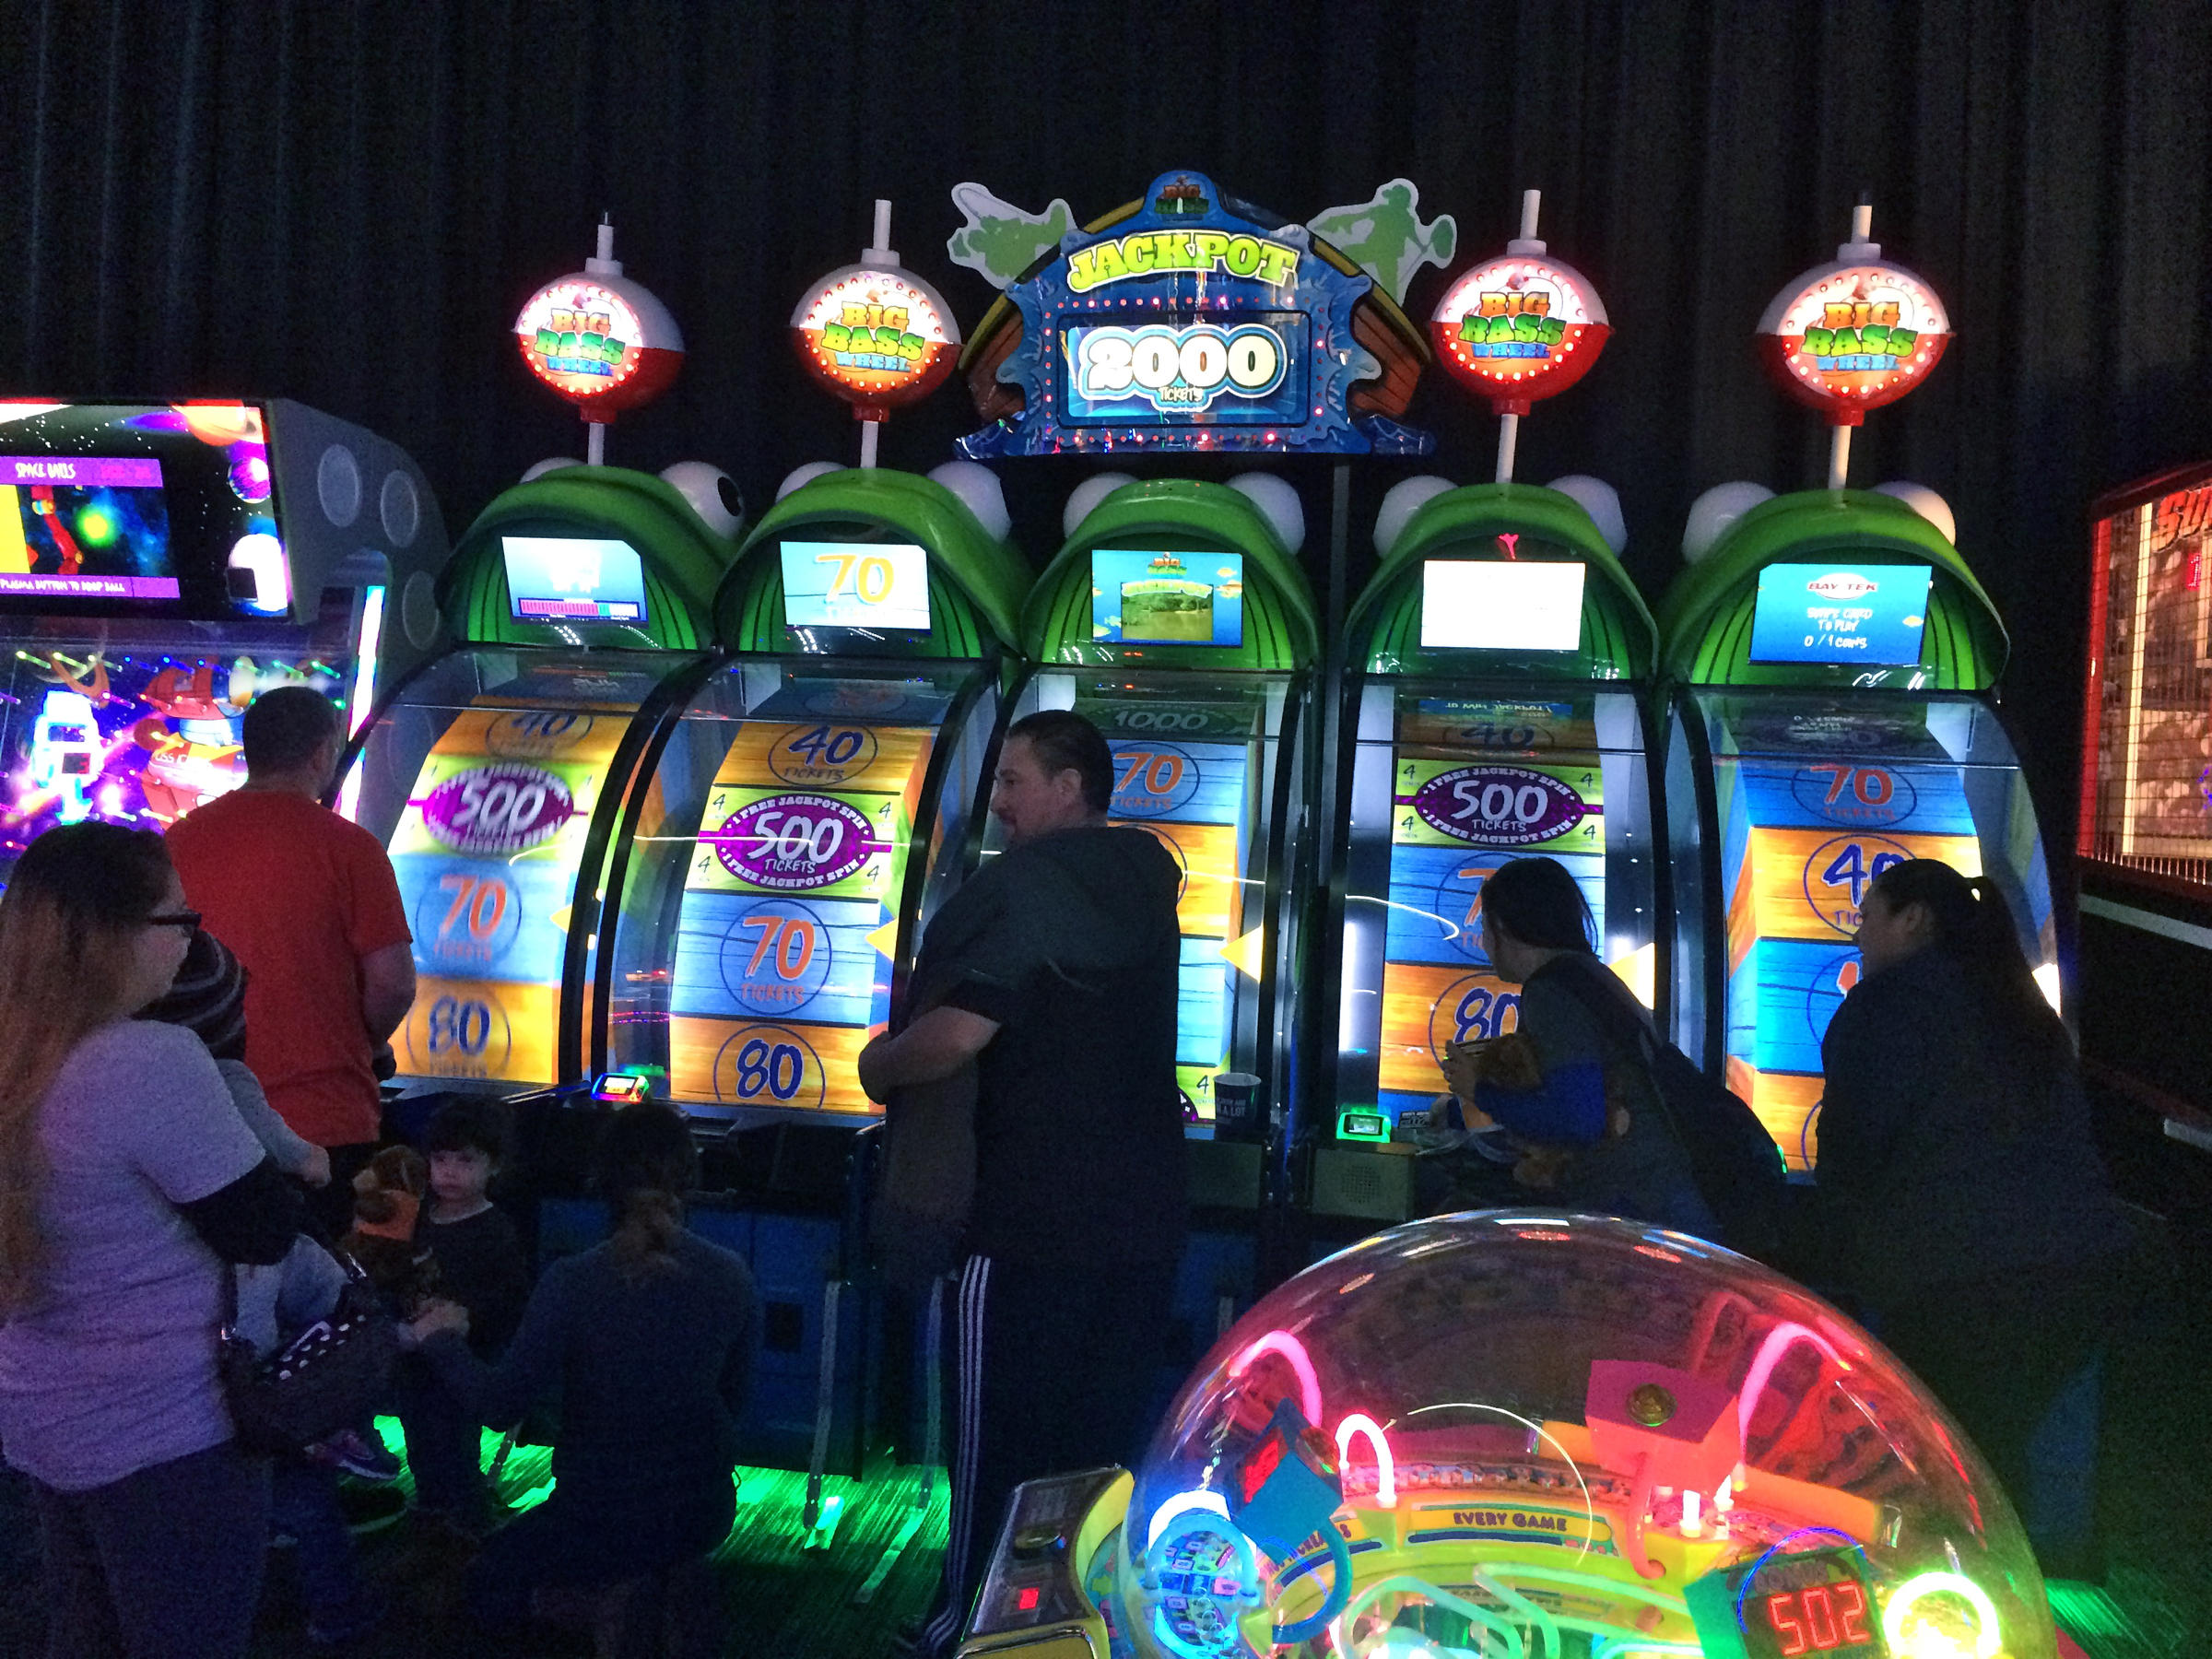 Inside Dave and Buster's Credit Marisa Demarco / KUNM